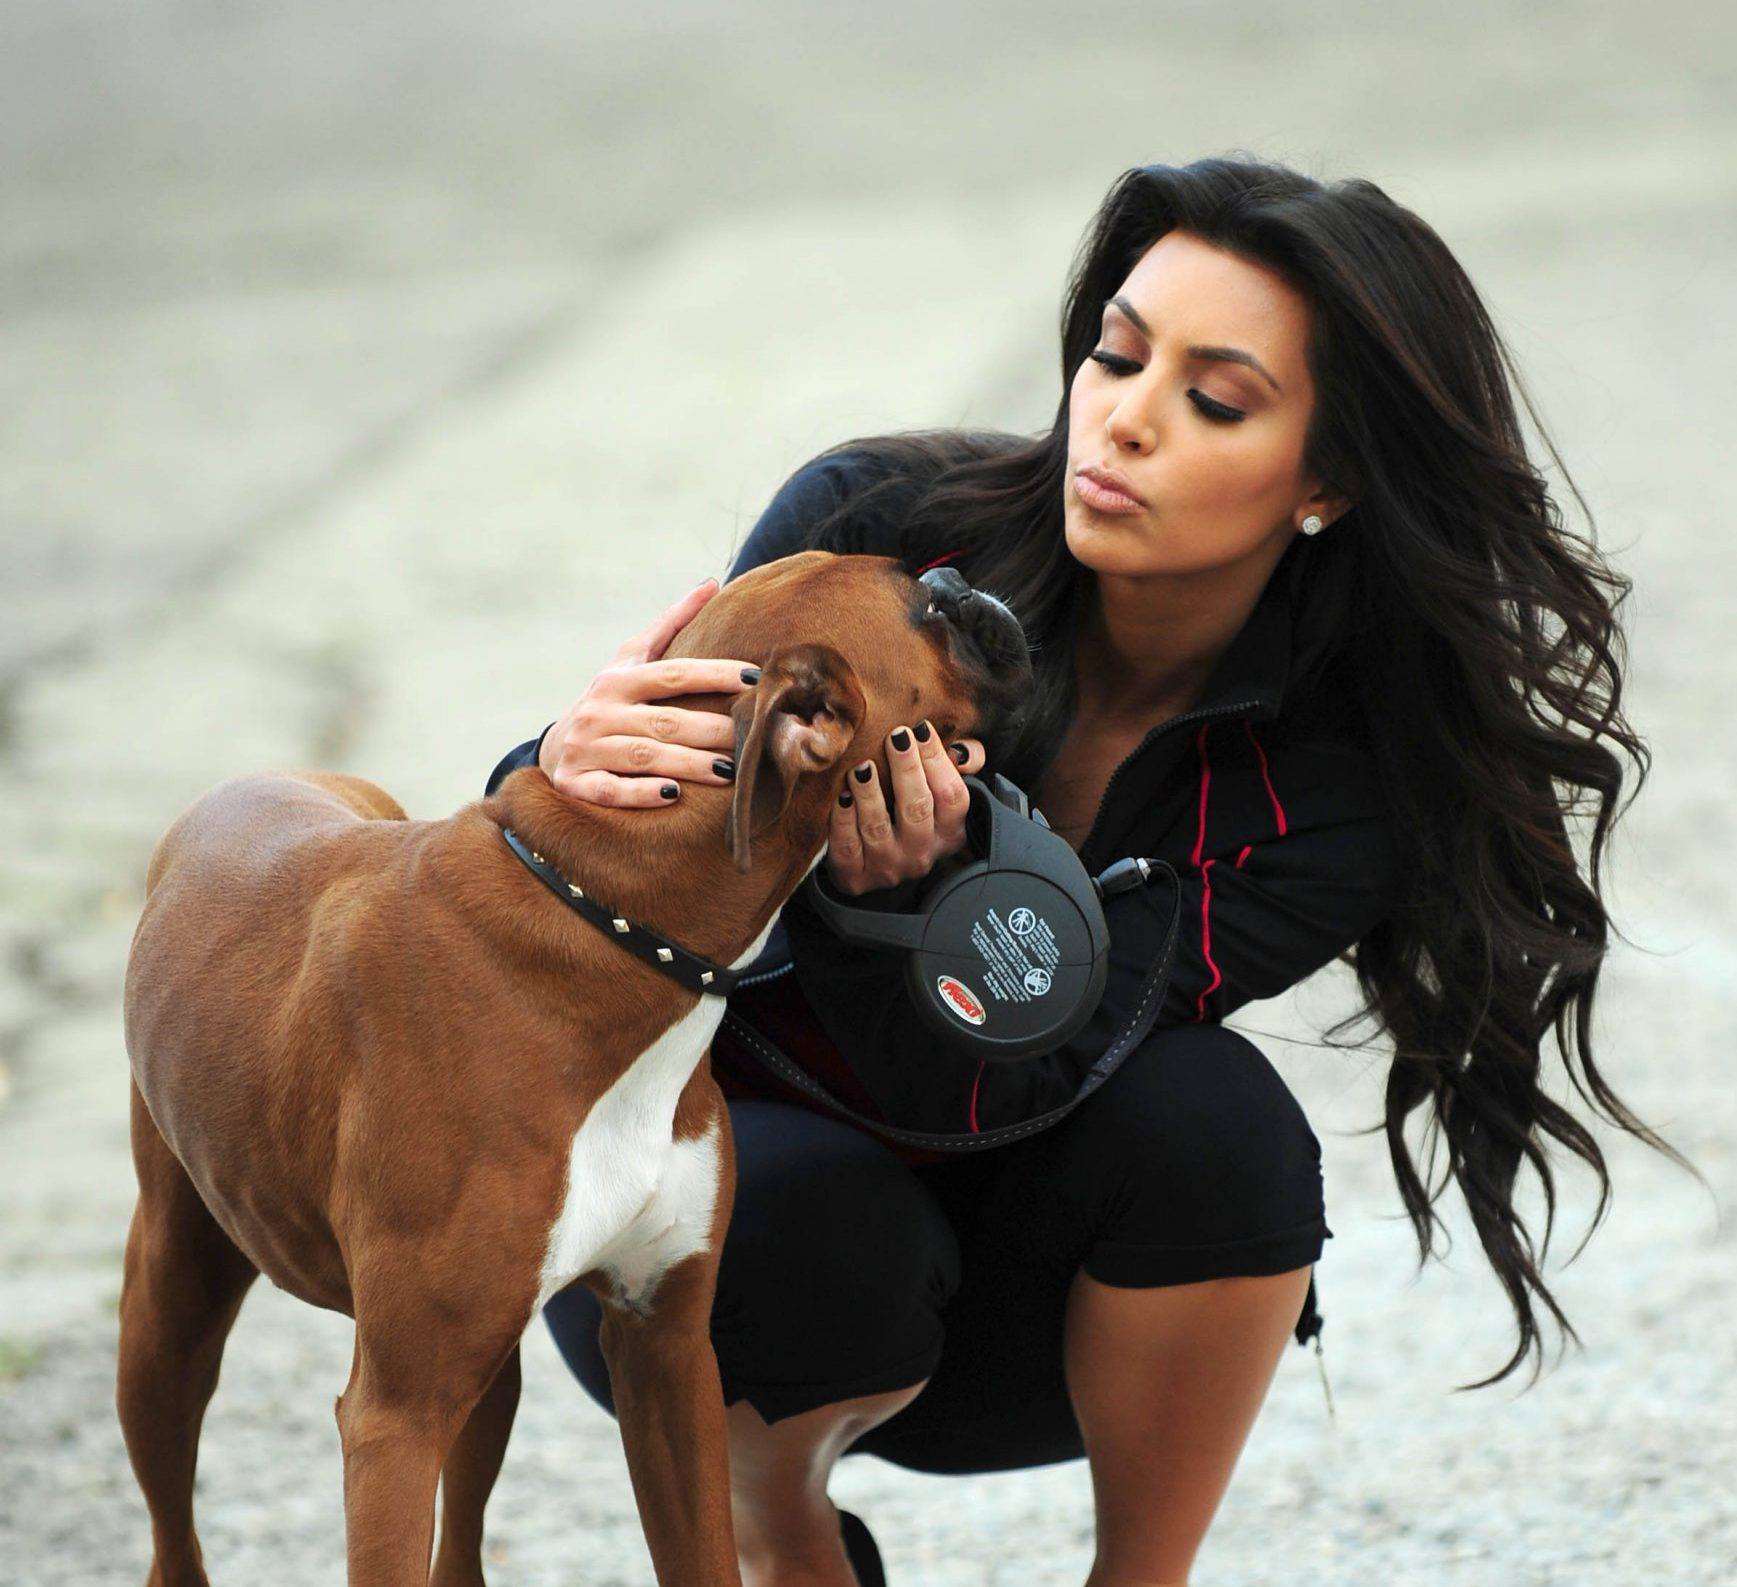 Mandatory Credit: Photo by Startraks Photo/REX/Shutterstock (1122958b) Kim Kardashian with dog Kim Kardashian with hers and Reggie Bush's Dog Rocky, Beverly Hills, Los Angeles, America - 23 Feb 2010 Kim Kardashian walks Rocky. Kim gave the dog to boyfriend Reggie Bush of the New Orleans Saints.